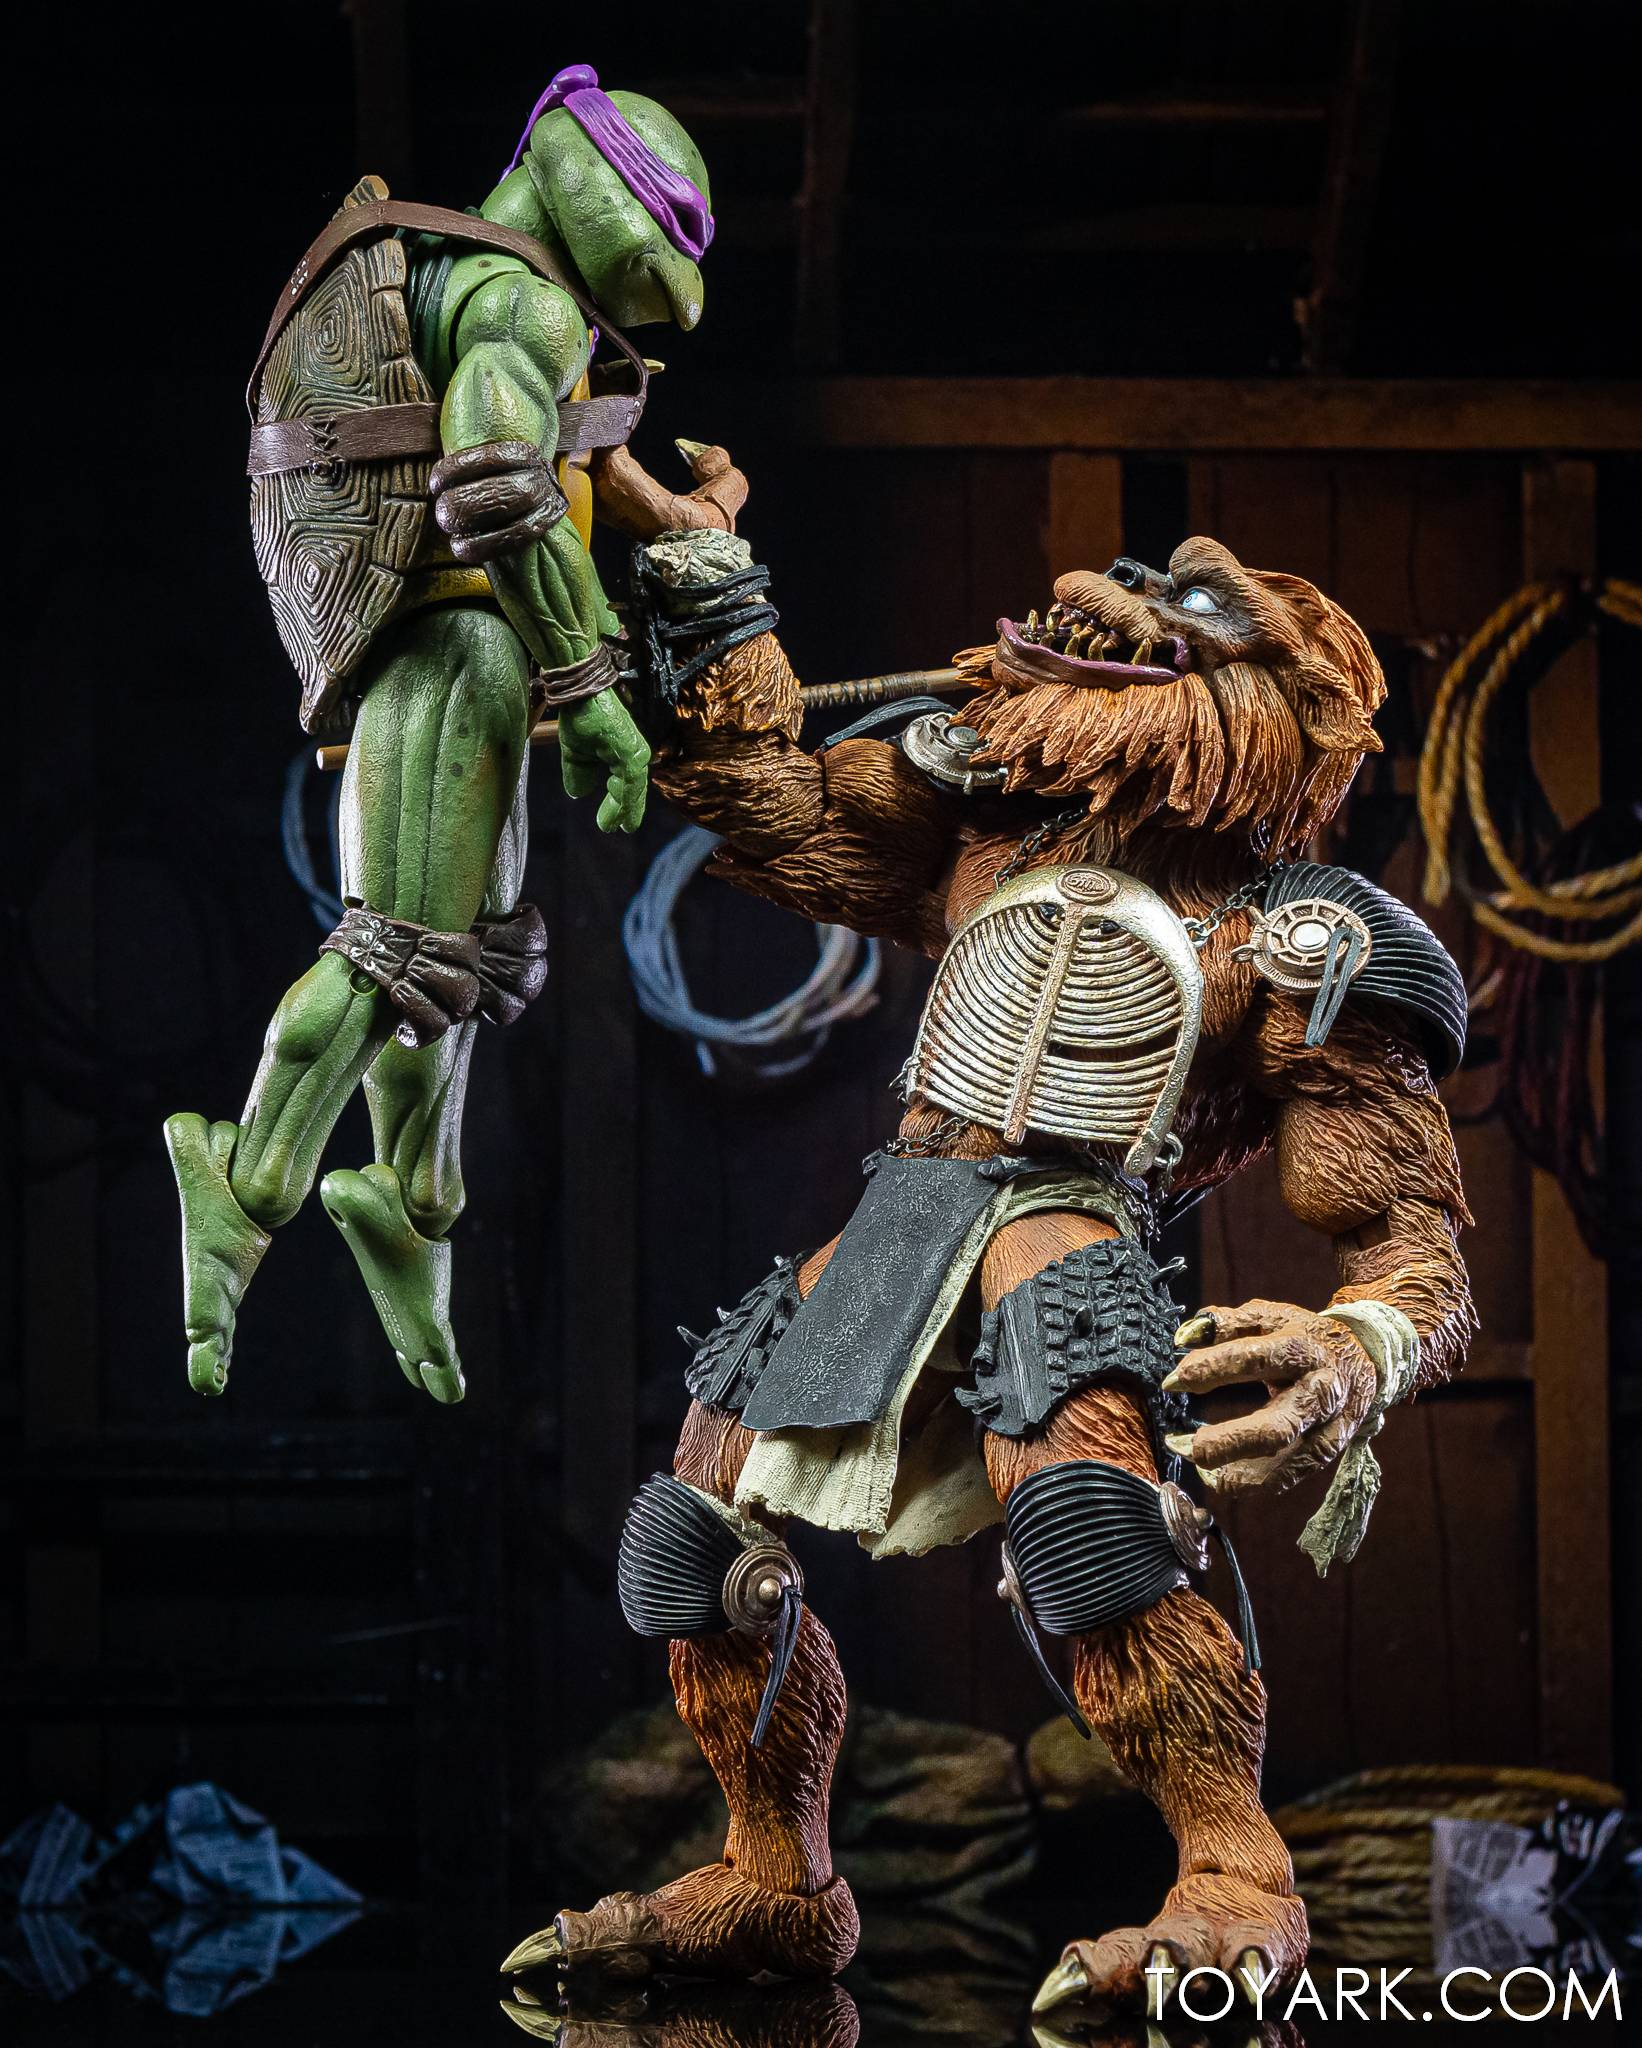 https://news.toyark.com/wp-content/uploads/sites/4/2021/03/NECA-Tokka-and-Rahzar-TMNT-II-043.jpg